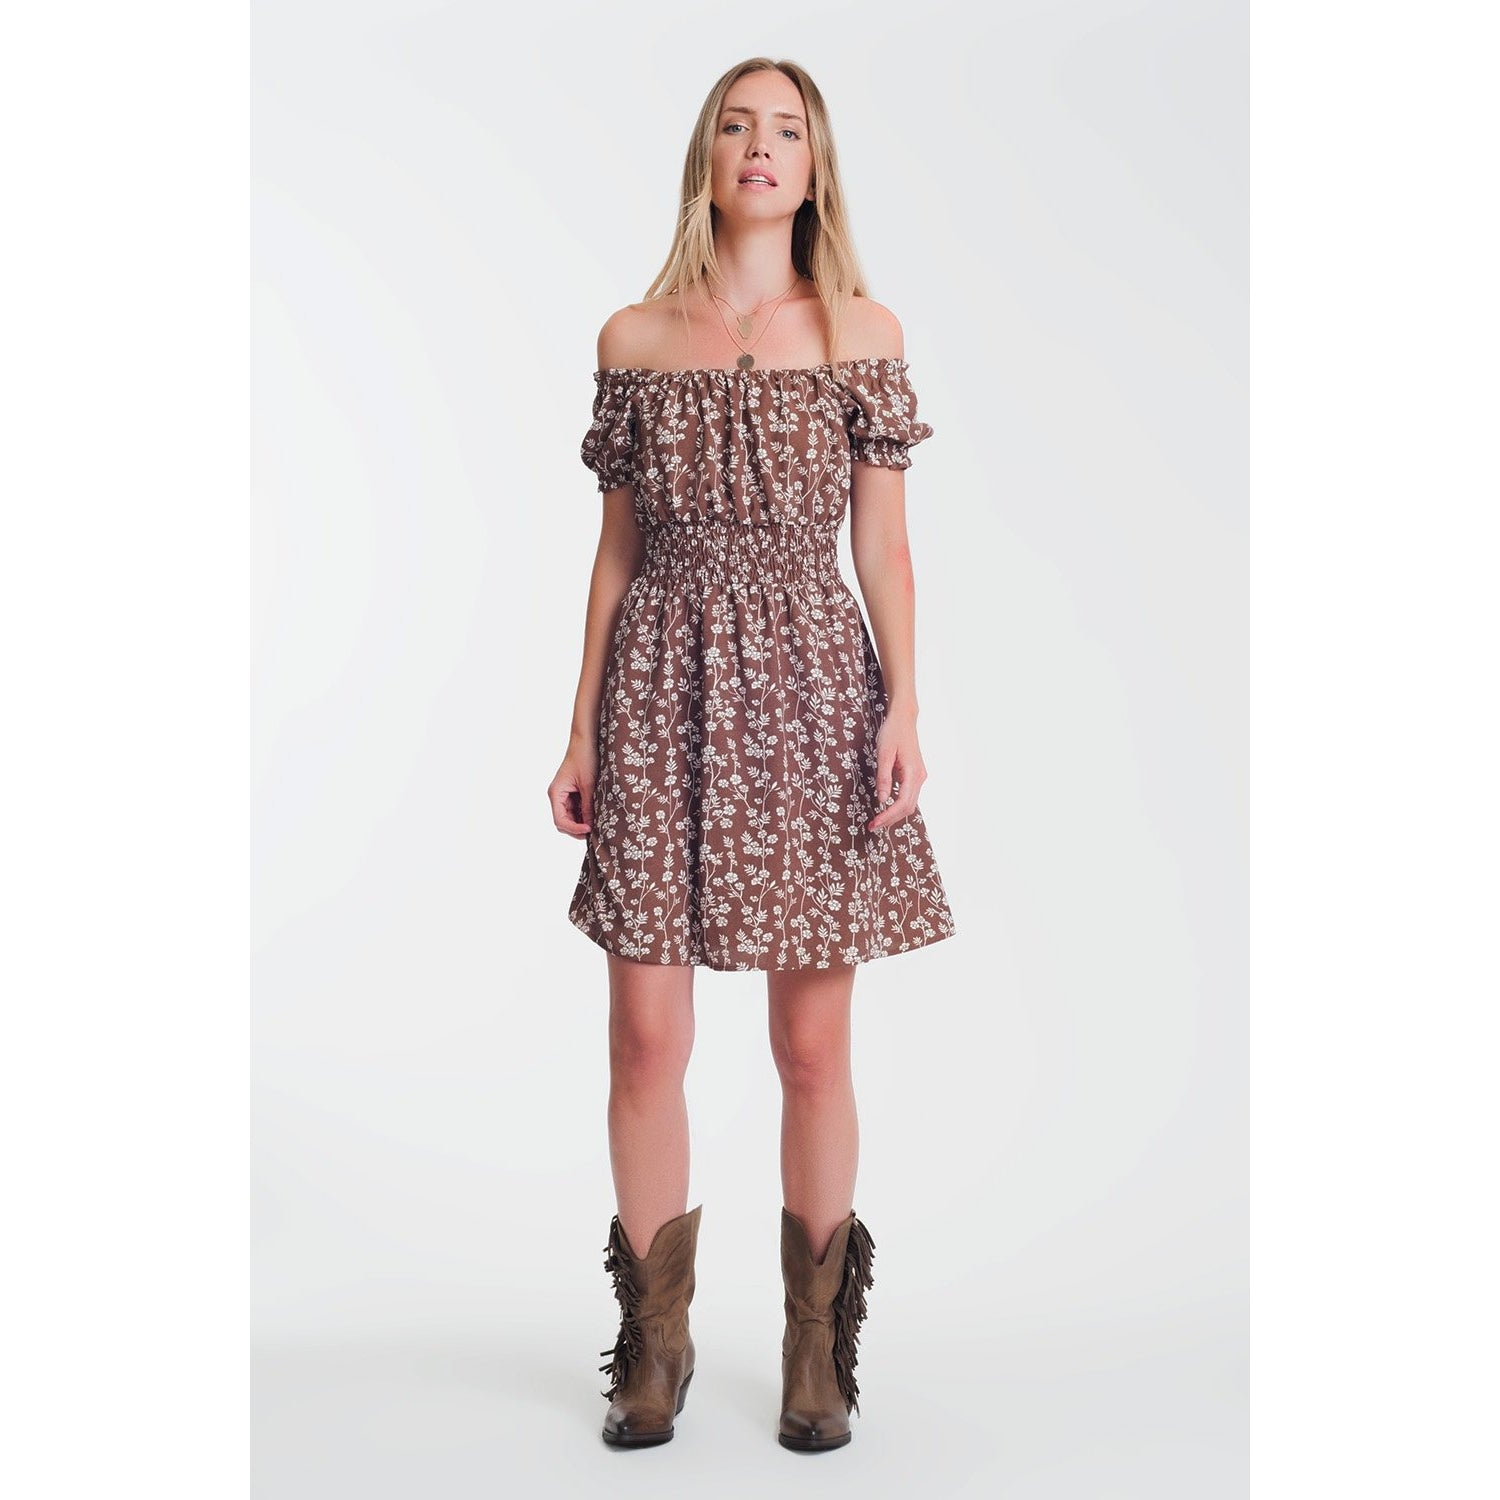 Brown Mini Bardot Dress in Floral Print - Miraposa